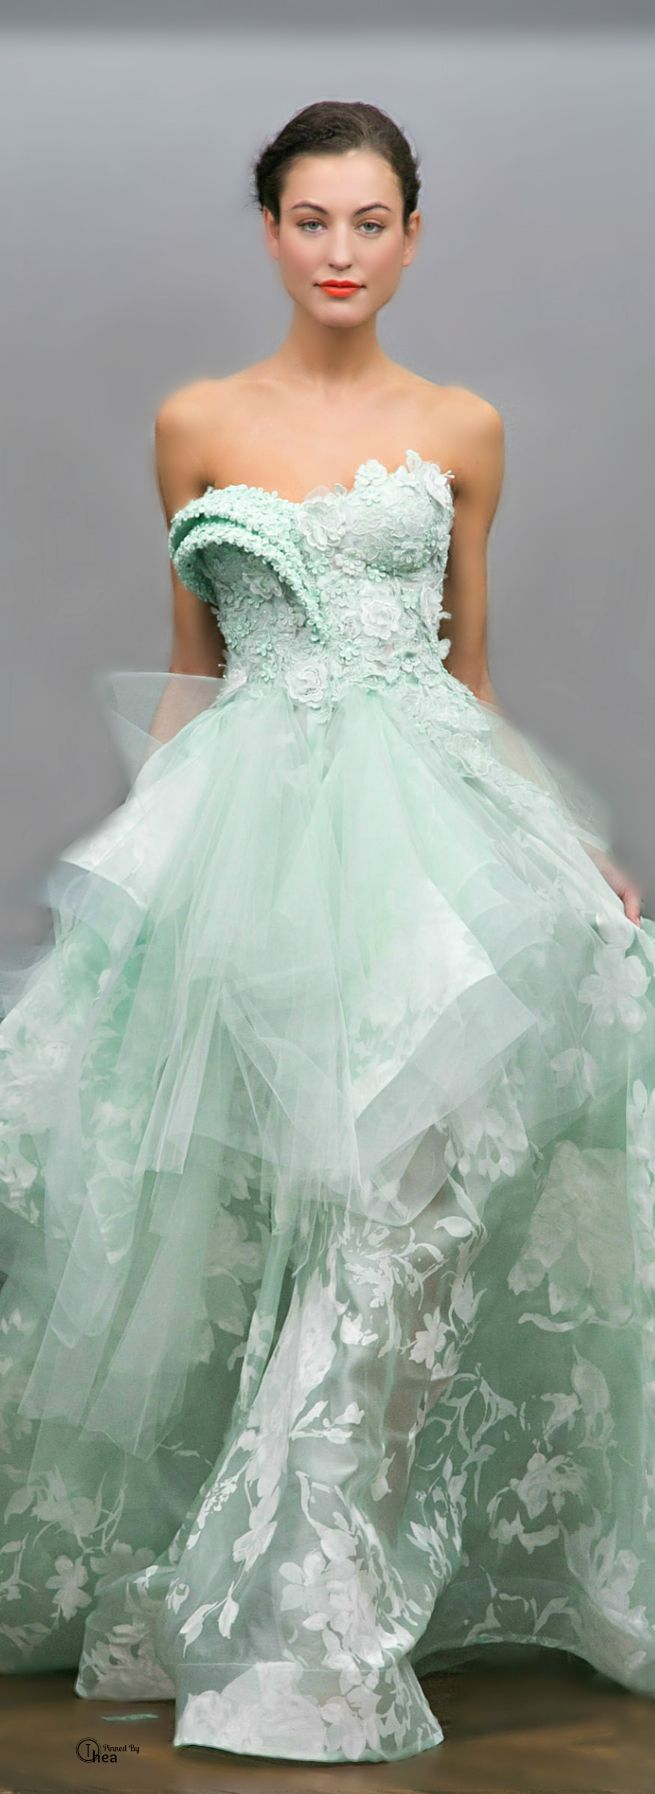 Tony yaacoub couture ss glad rags pinterest couture